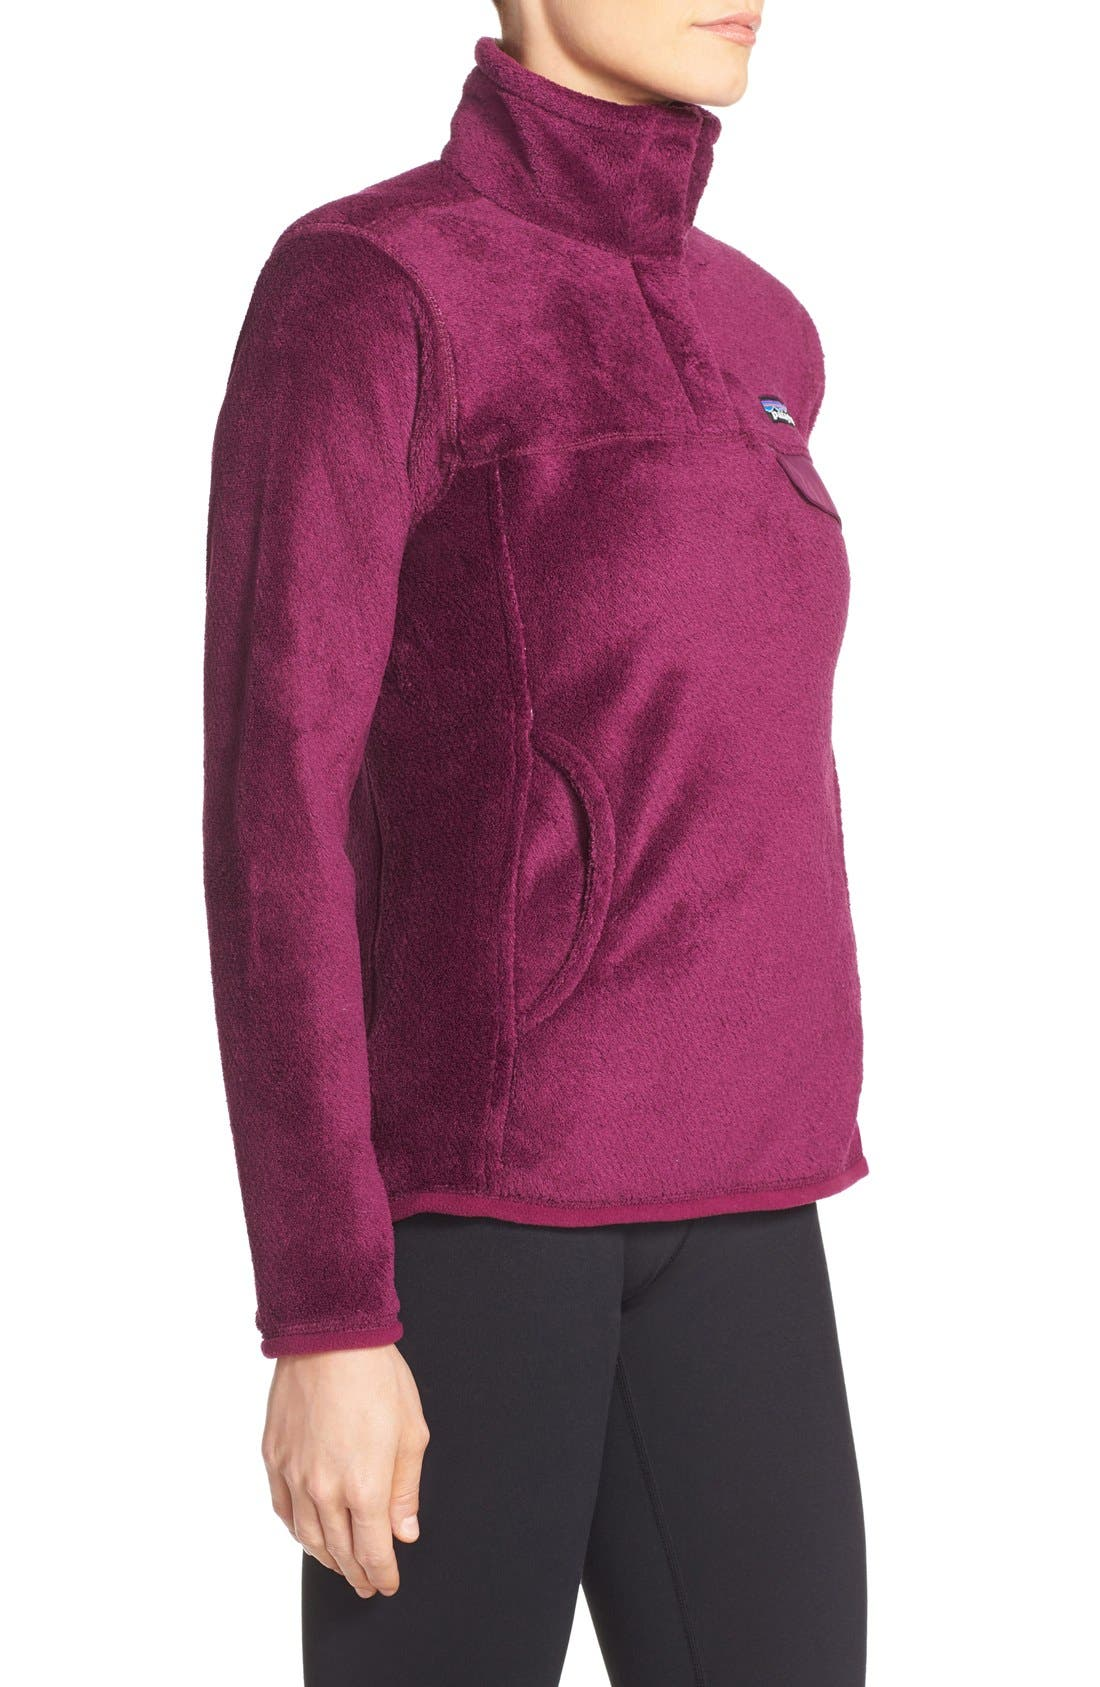 ,                             Re-Tool Snap-T<sup>®</sup> Fleece Pullover,                             Alternate thumbnail 167, color,                             504